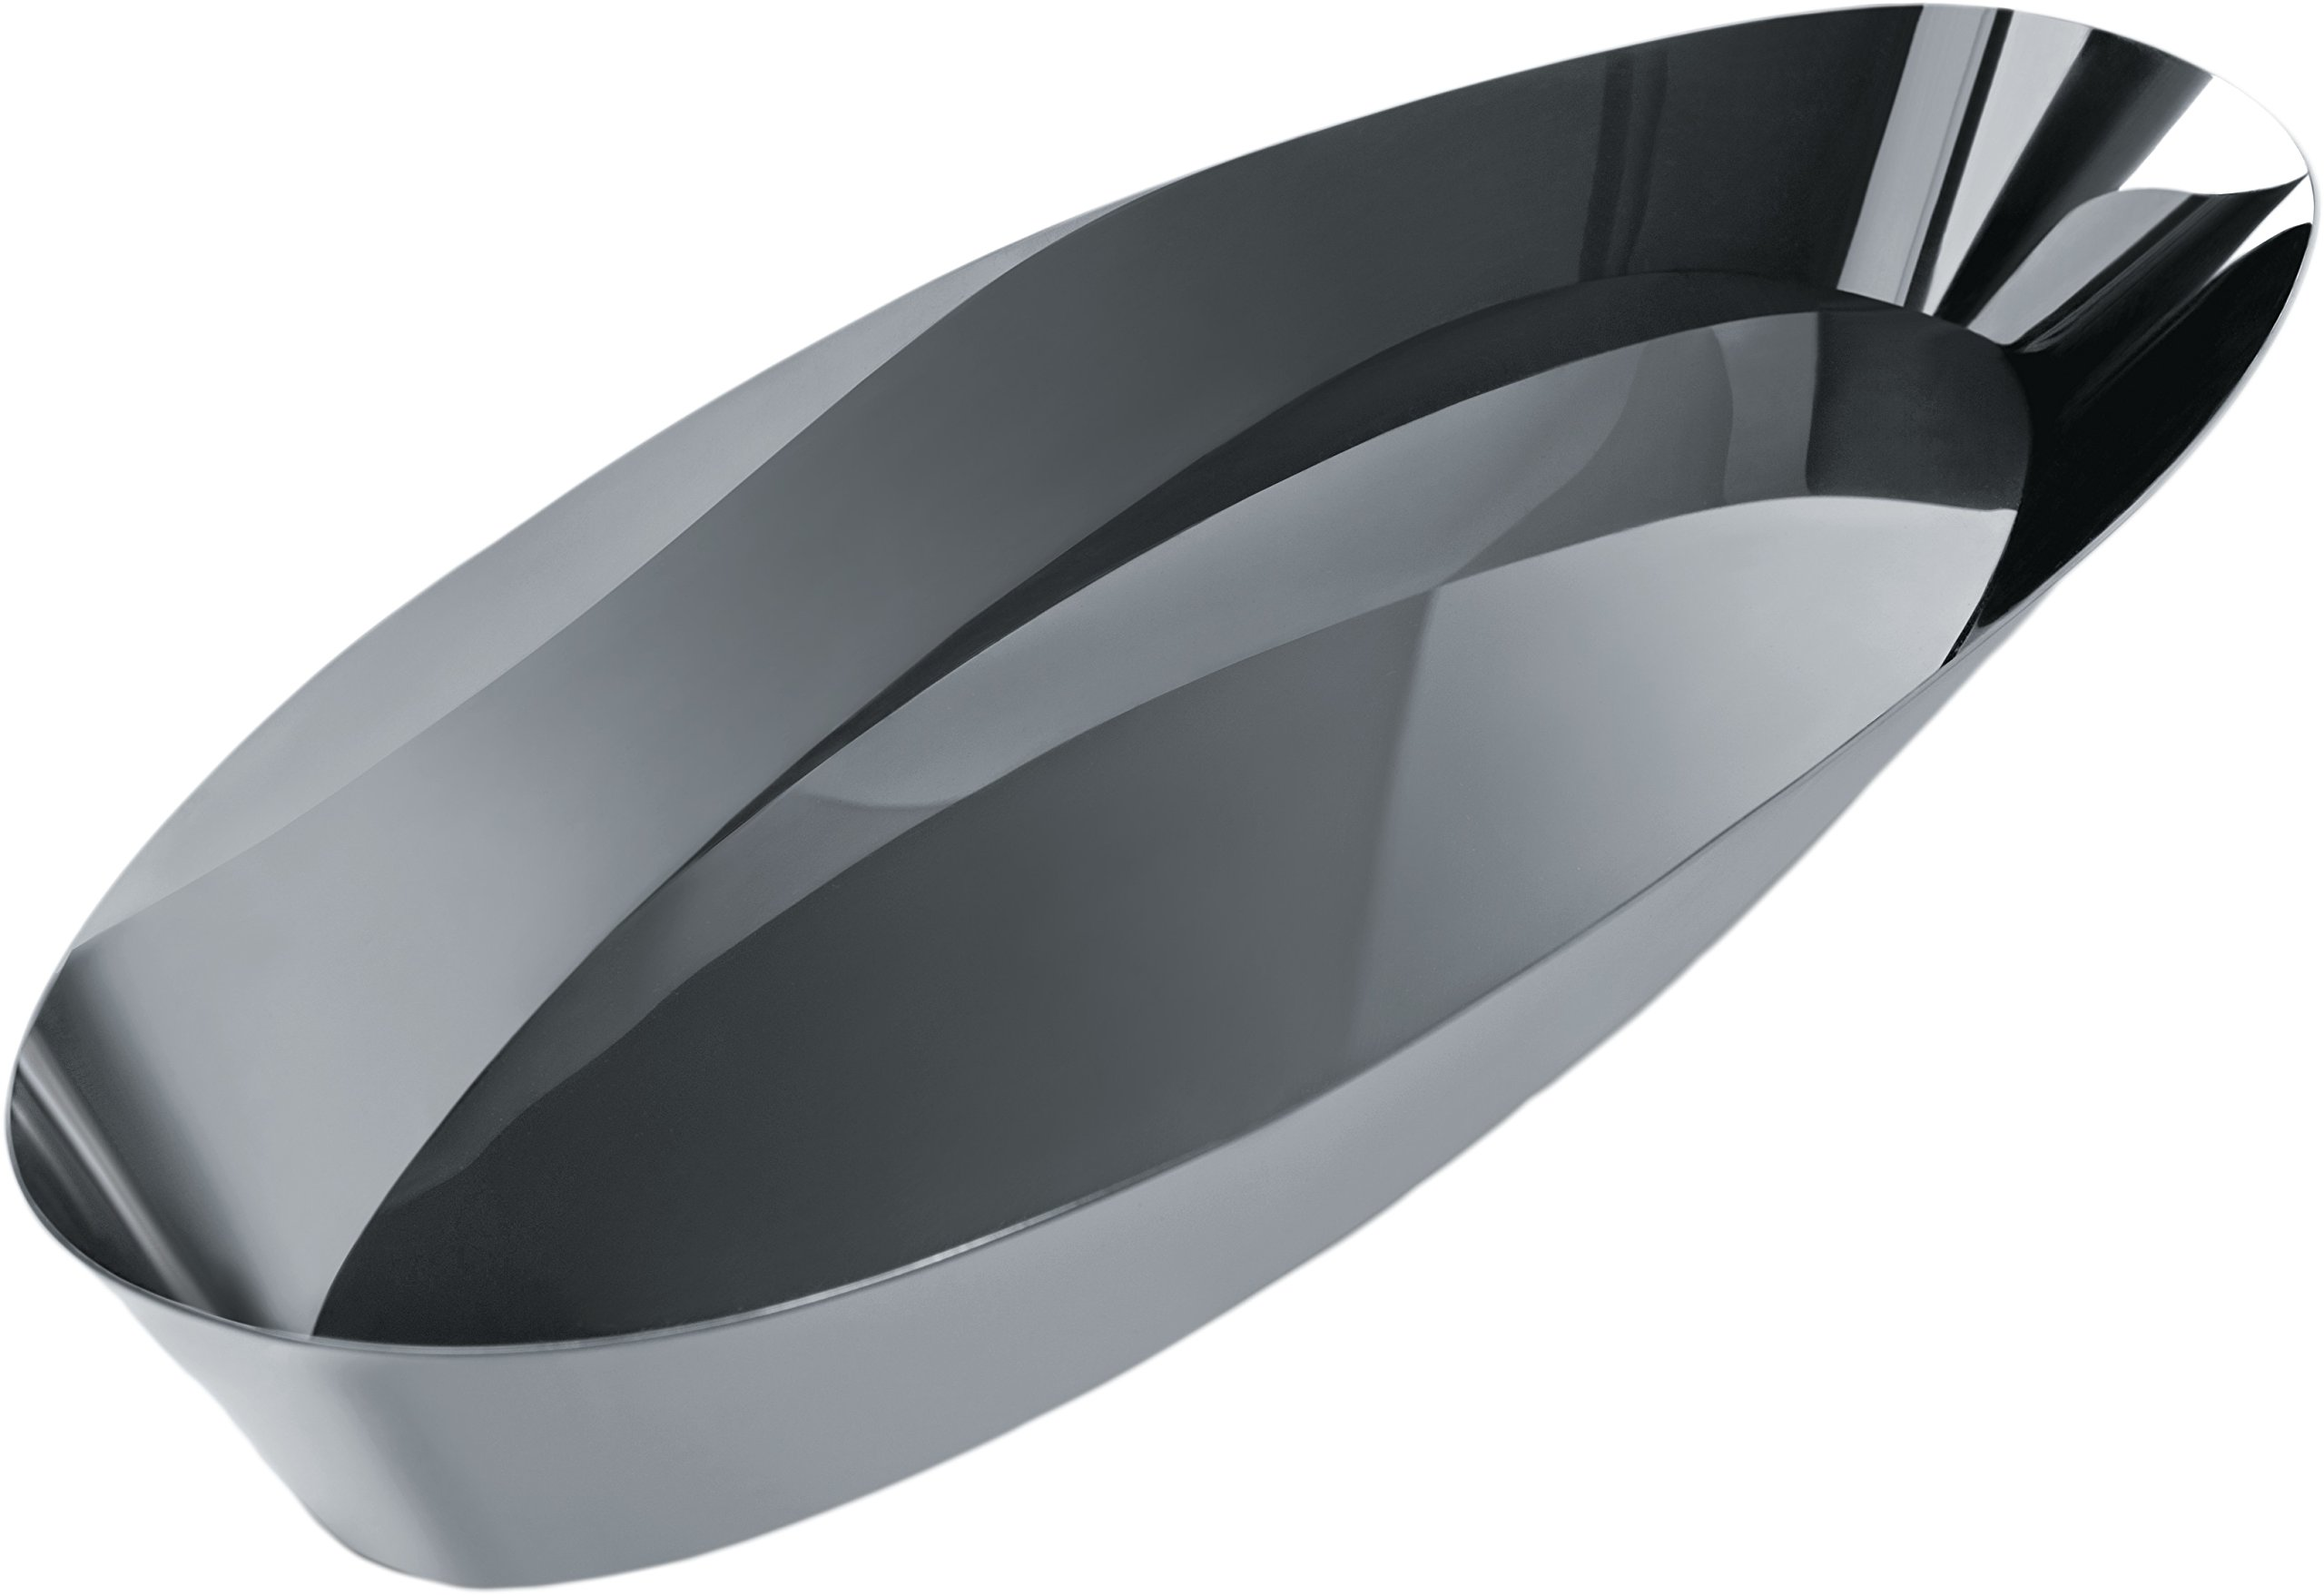 Alessi ''Pinpin'' Bread Basket in 18/10 Stainless Steel Mirror Polished, Silver